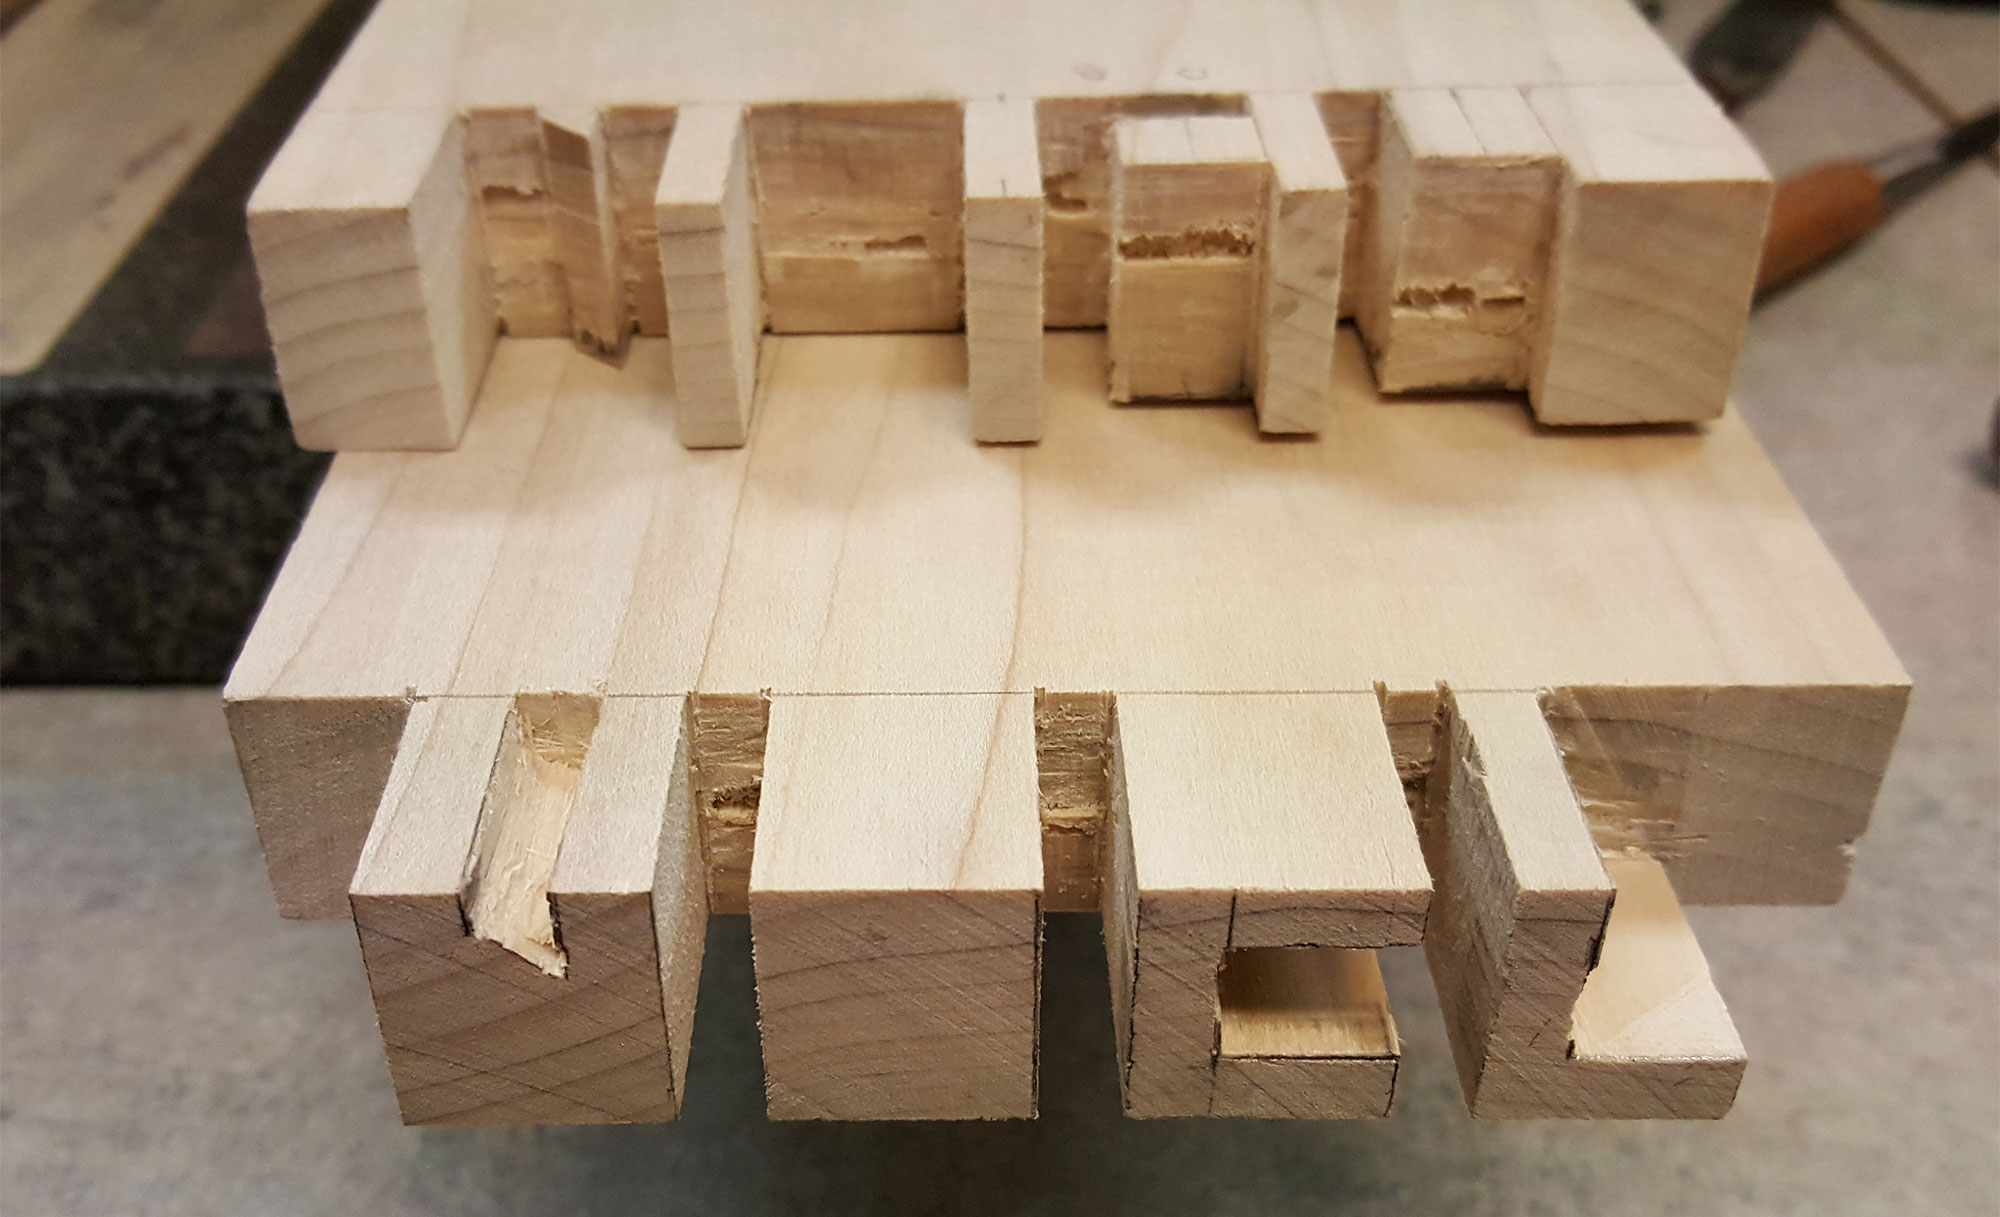 Join ready for glue-up